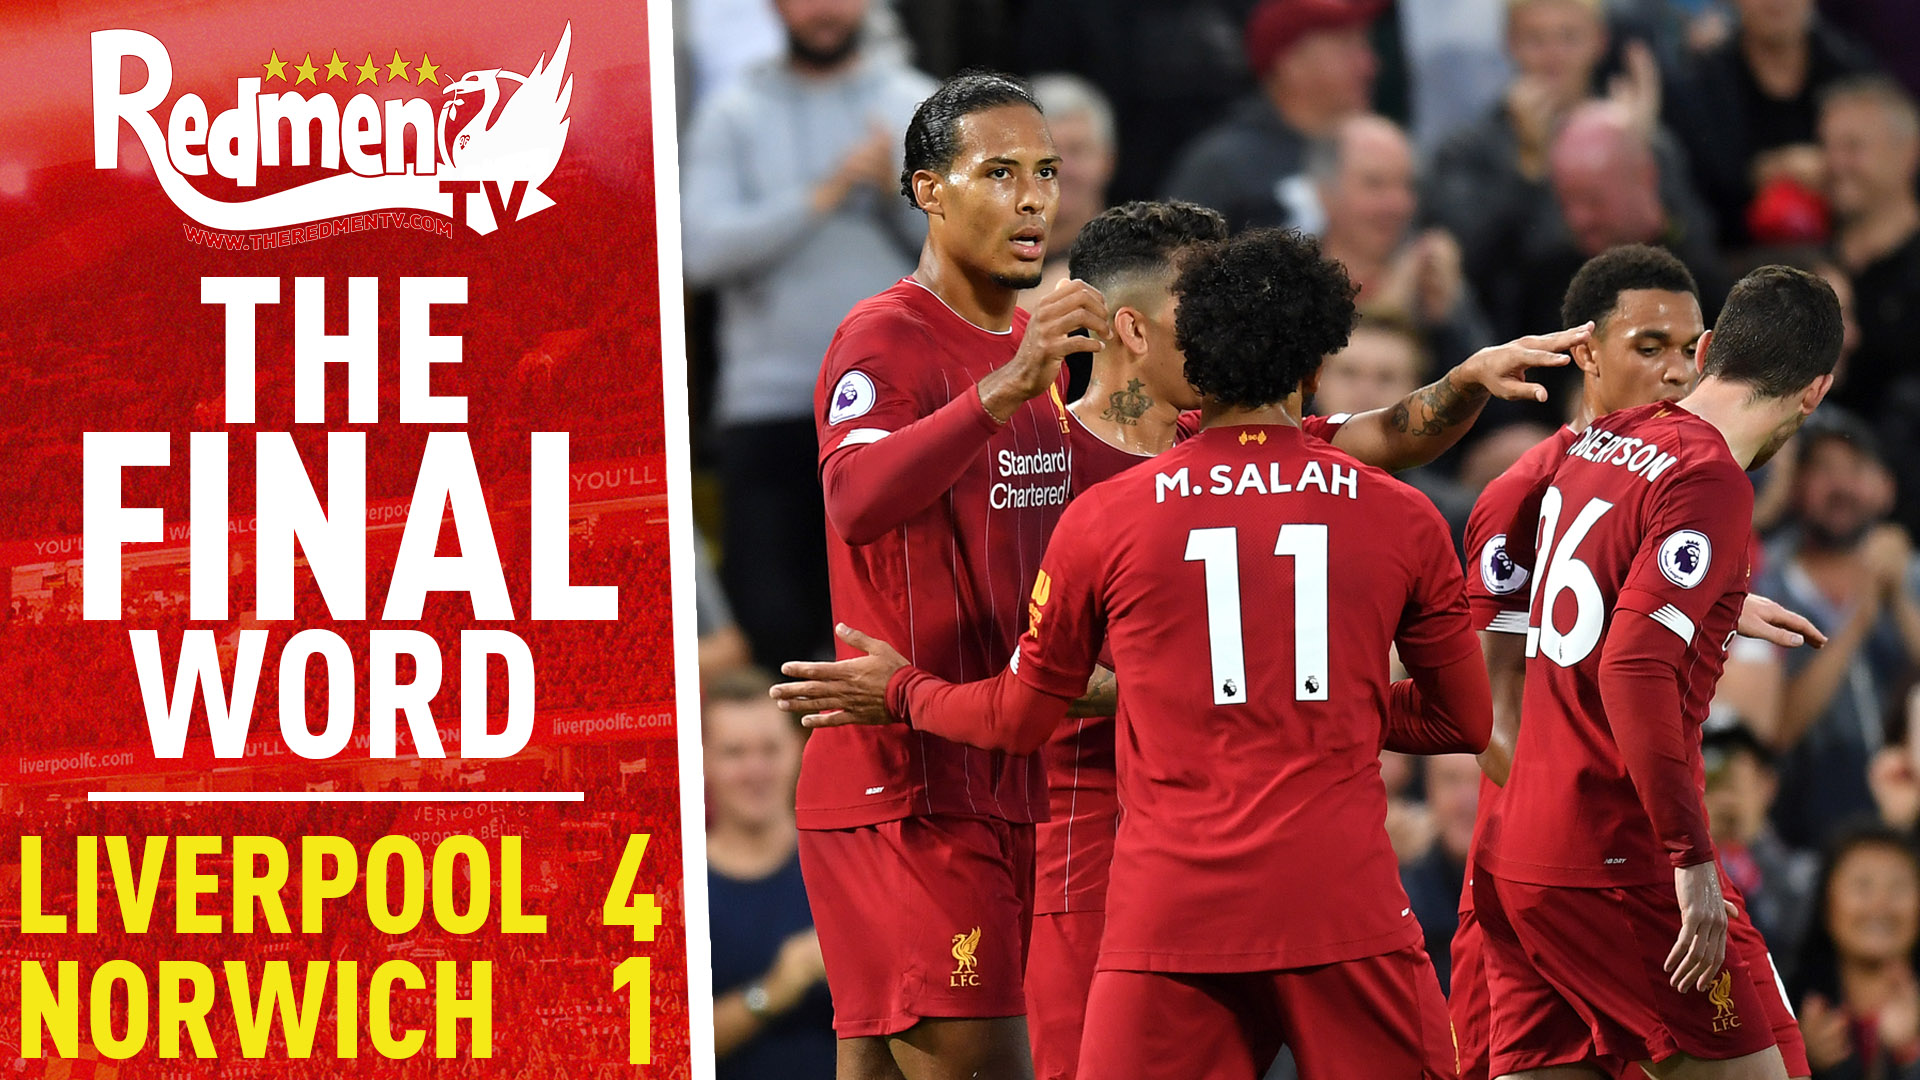 Liverpool 4-1 Norwich | The Final Word - The Redmen TV